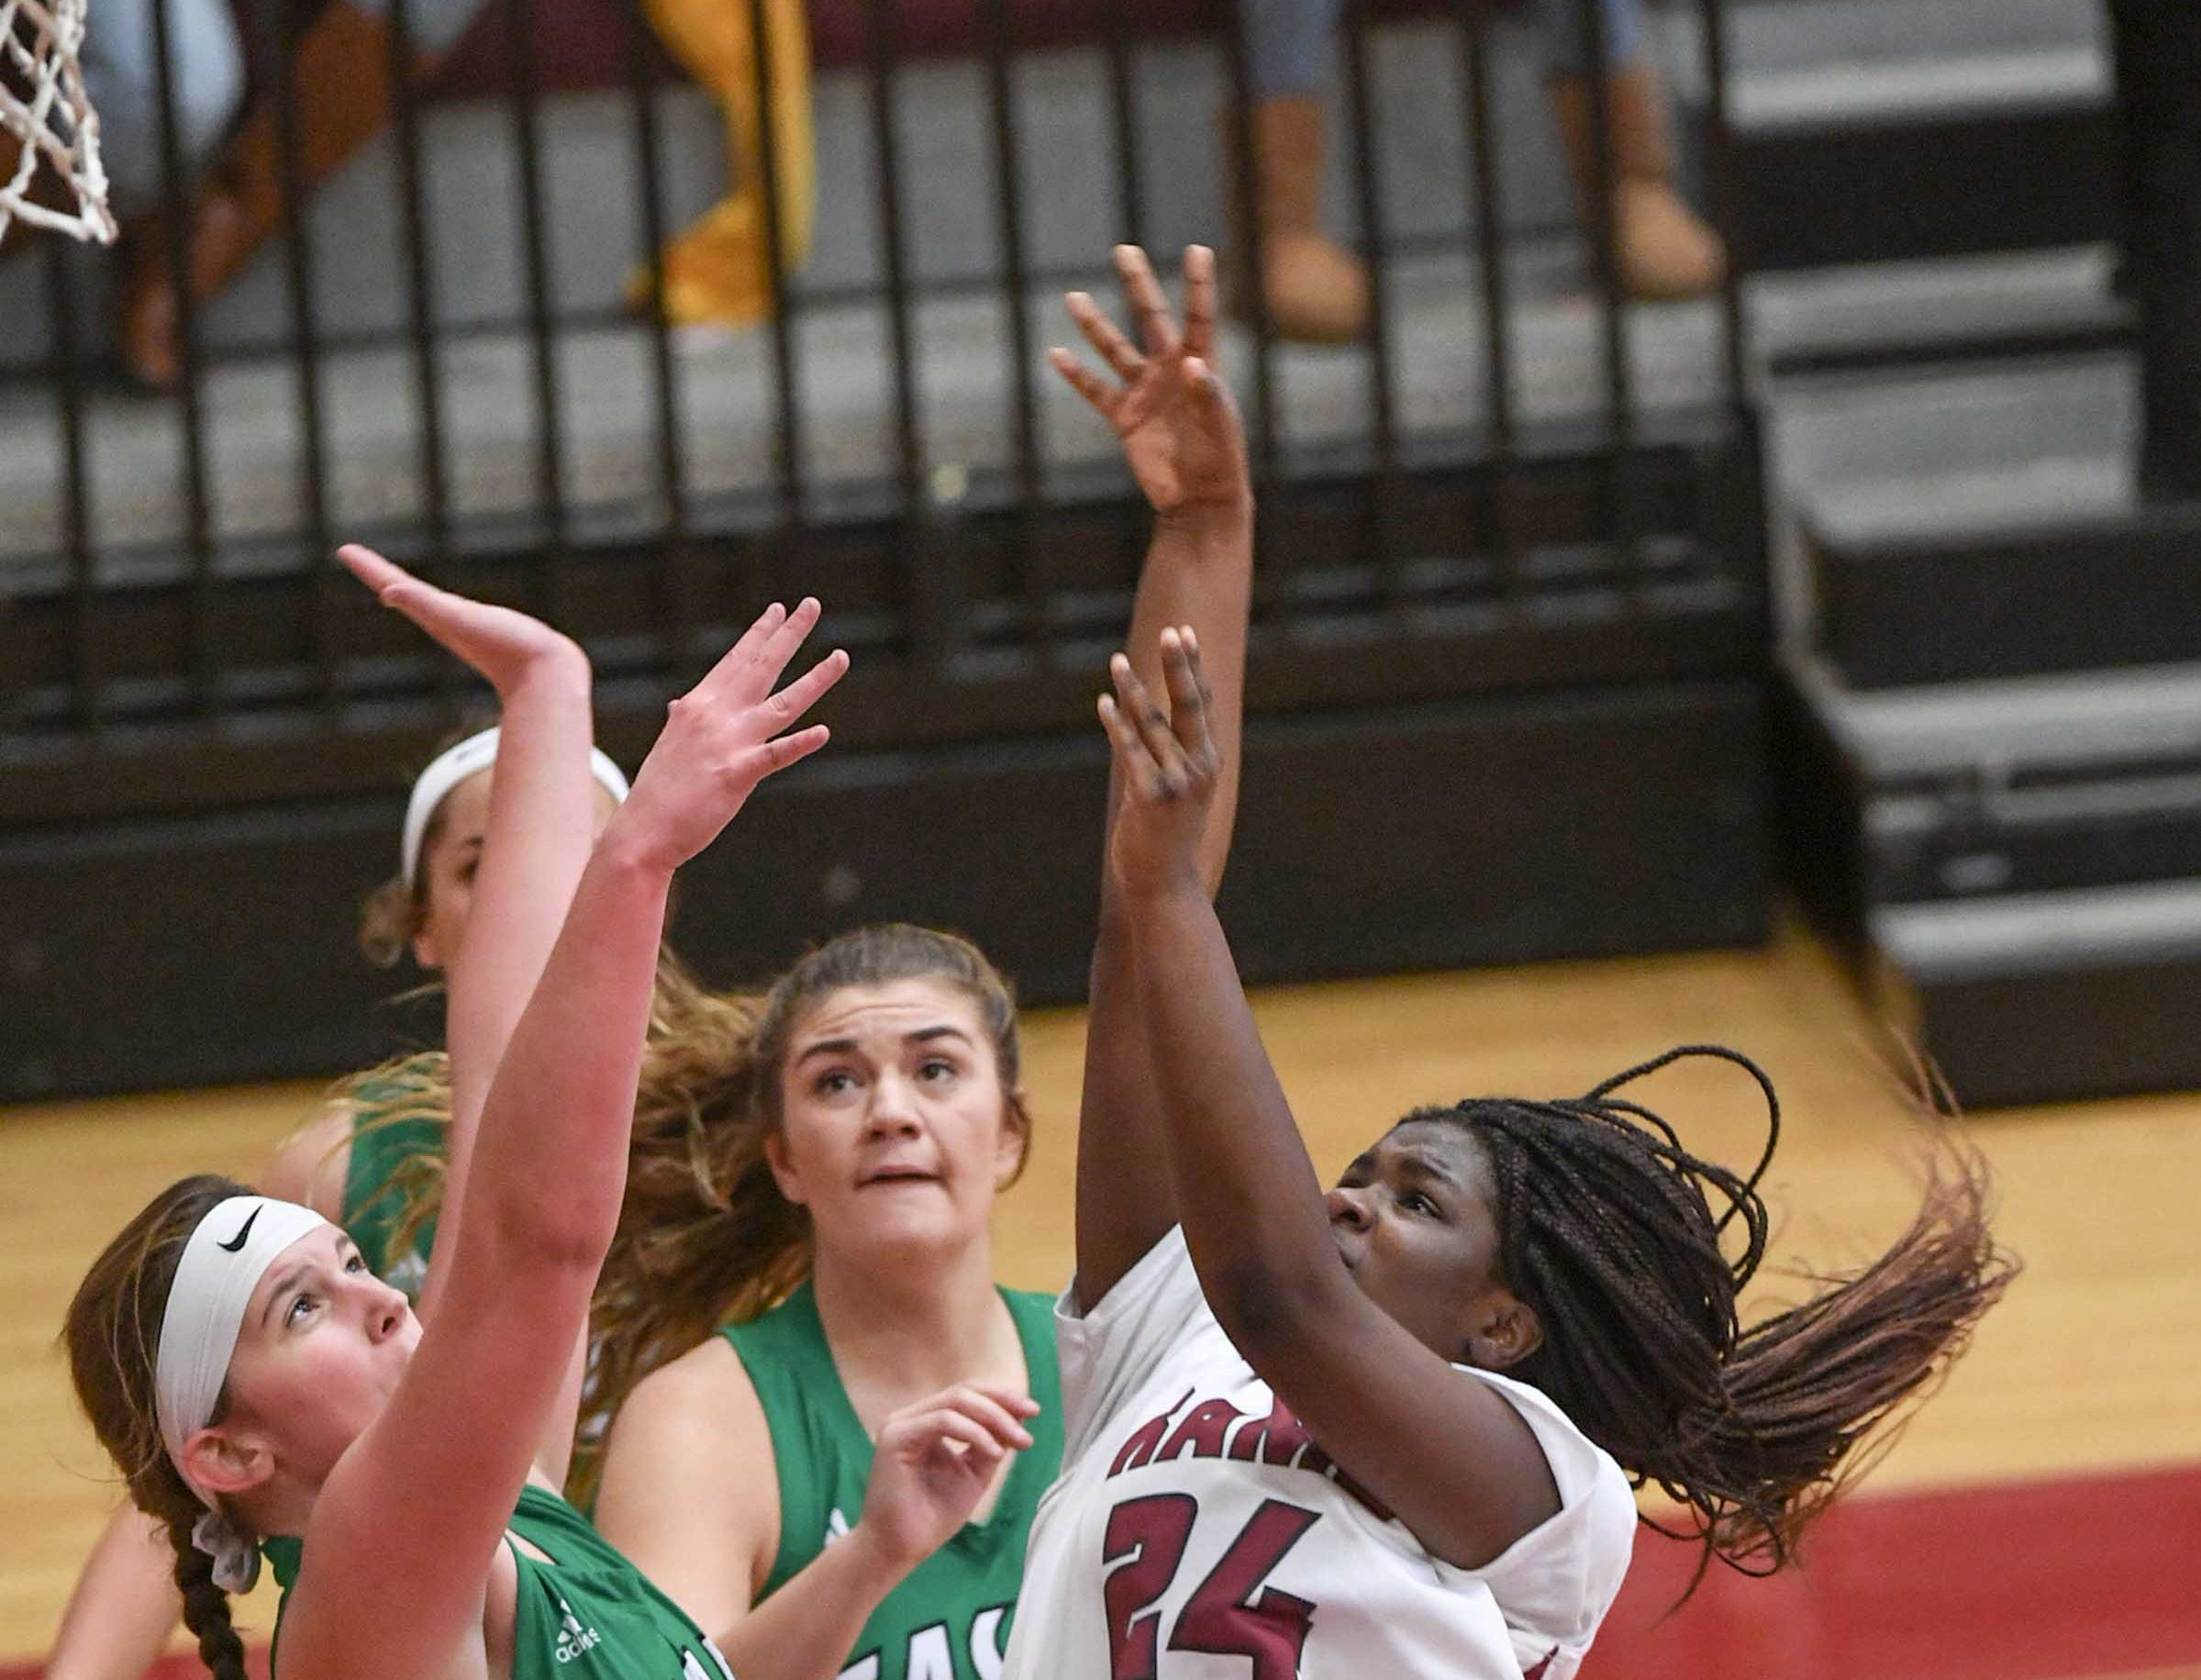 Easley freshman Kylie Nabors(15) pressures Westside sophomore Jaida Cobb(24) shooting the ball during the second quarter at Westside High School in Anderson on Friday.